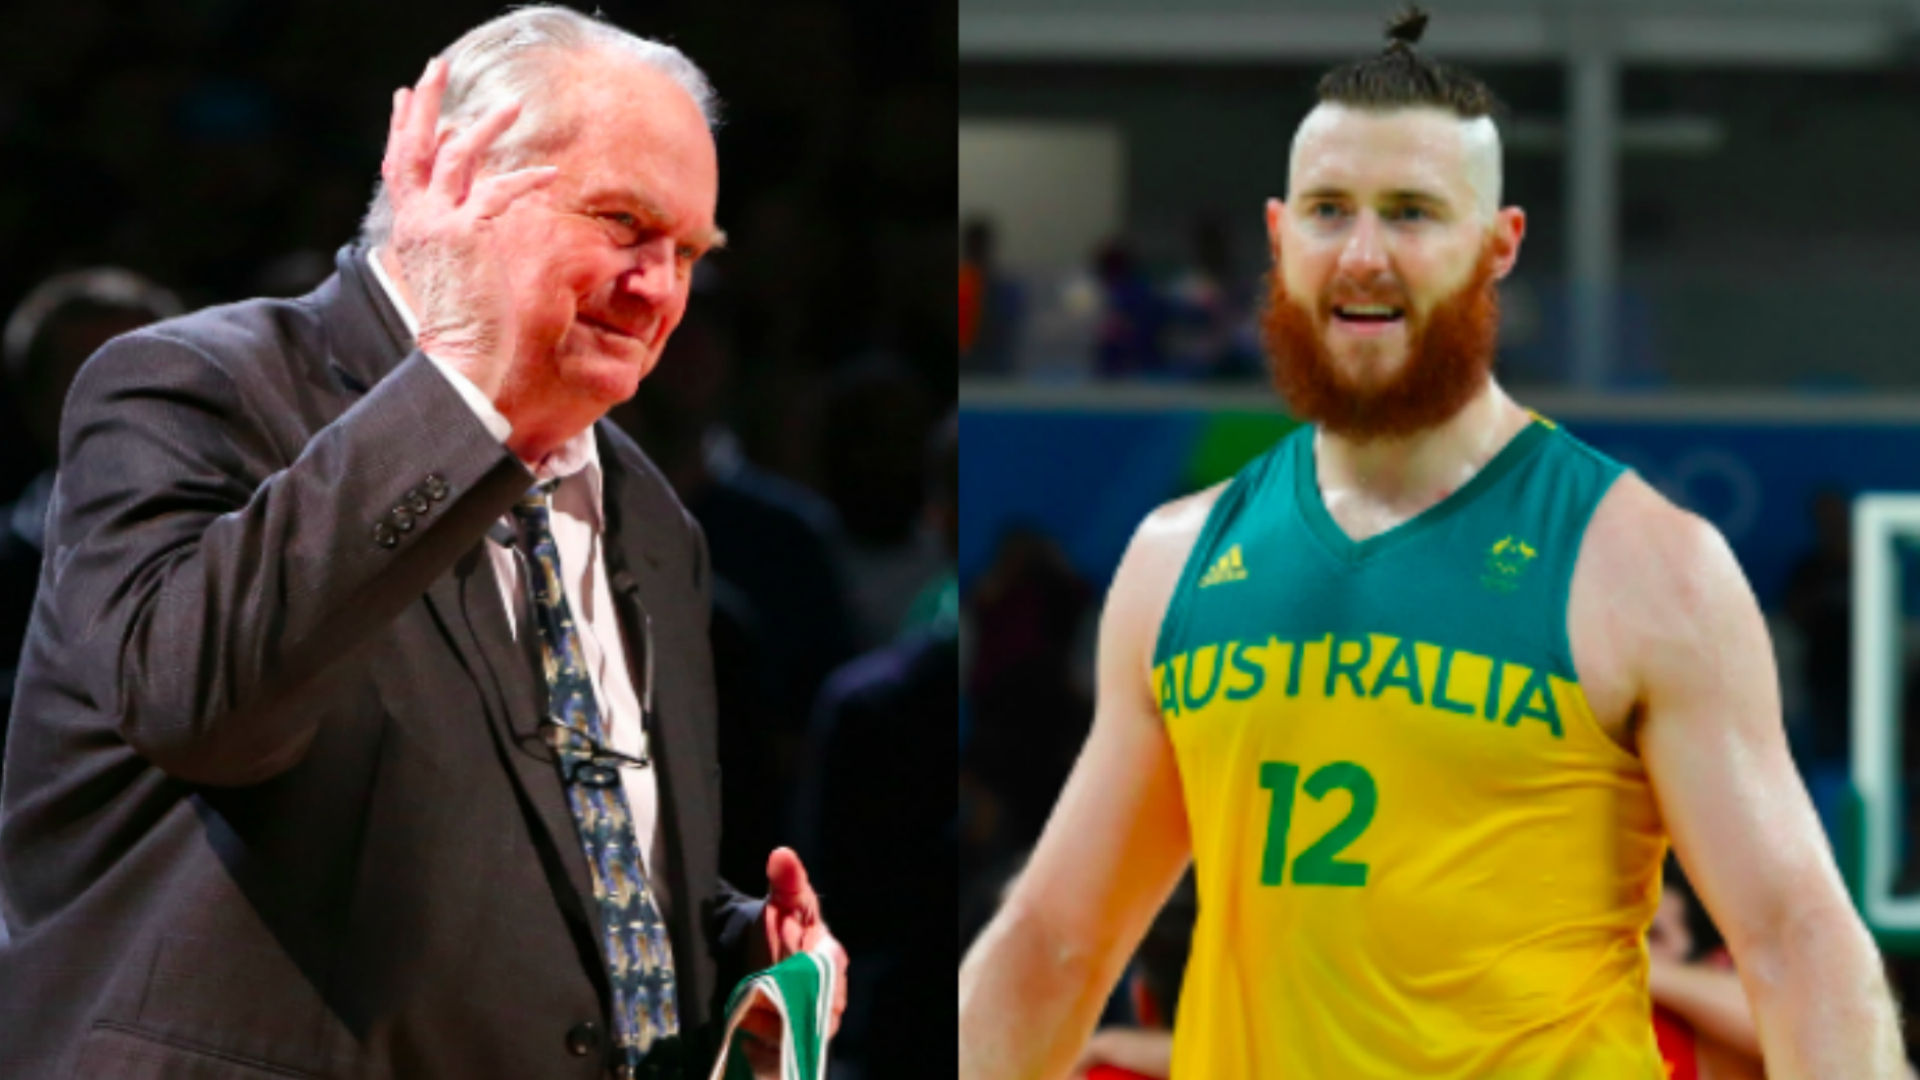 Tommy Heinsohn makes uncomfortable comment about Aron Baynes